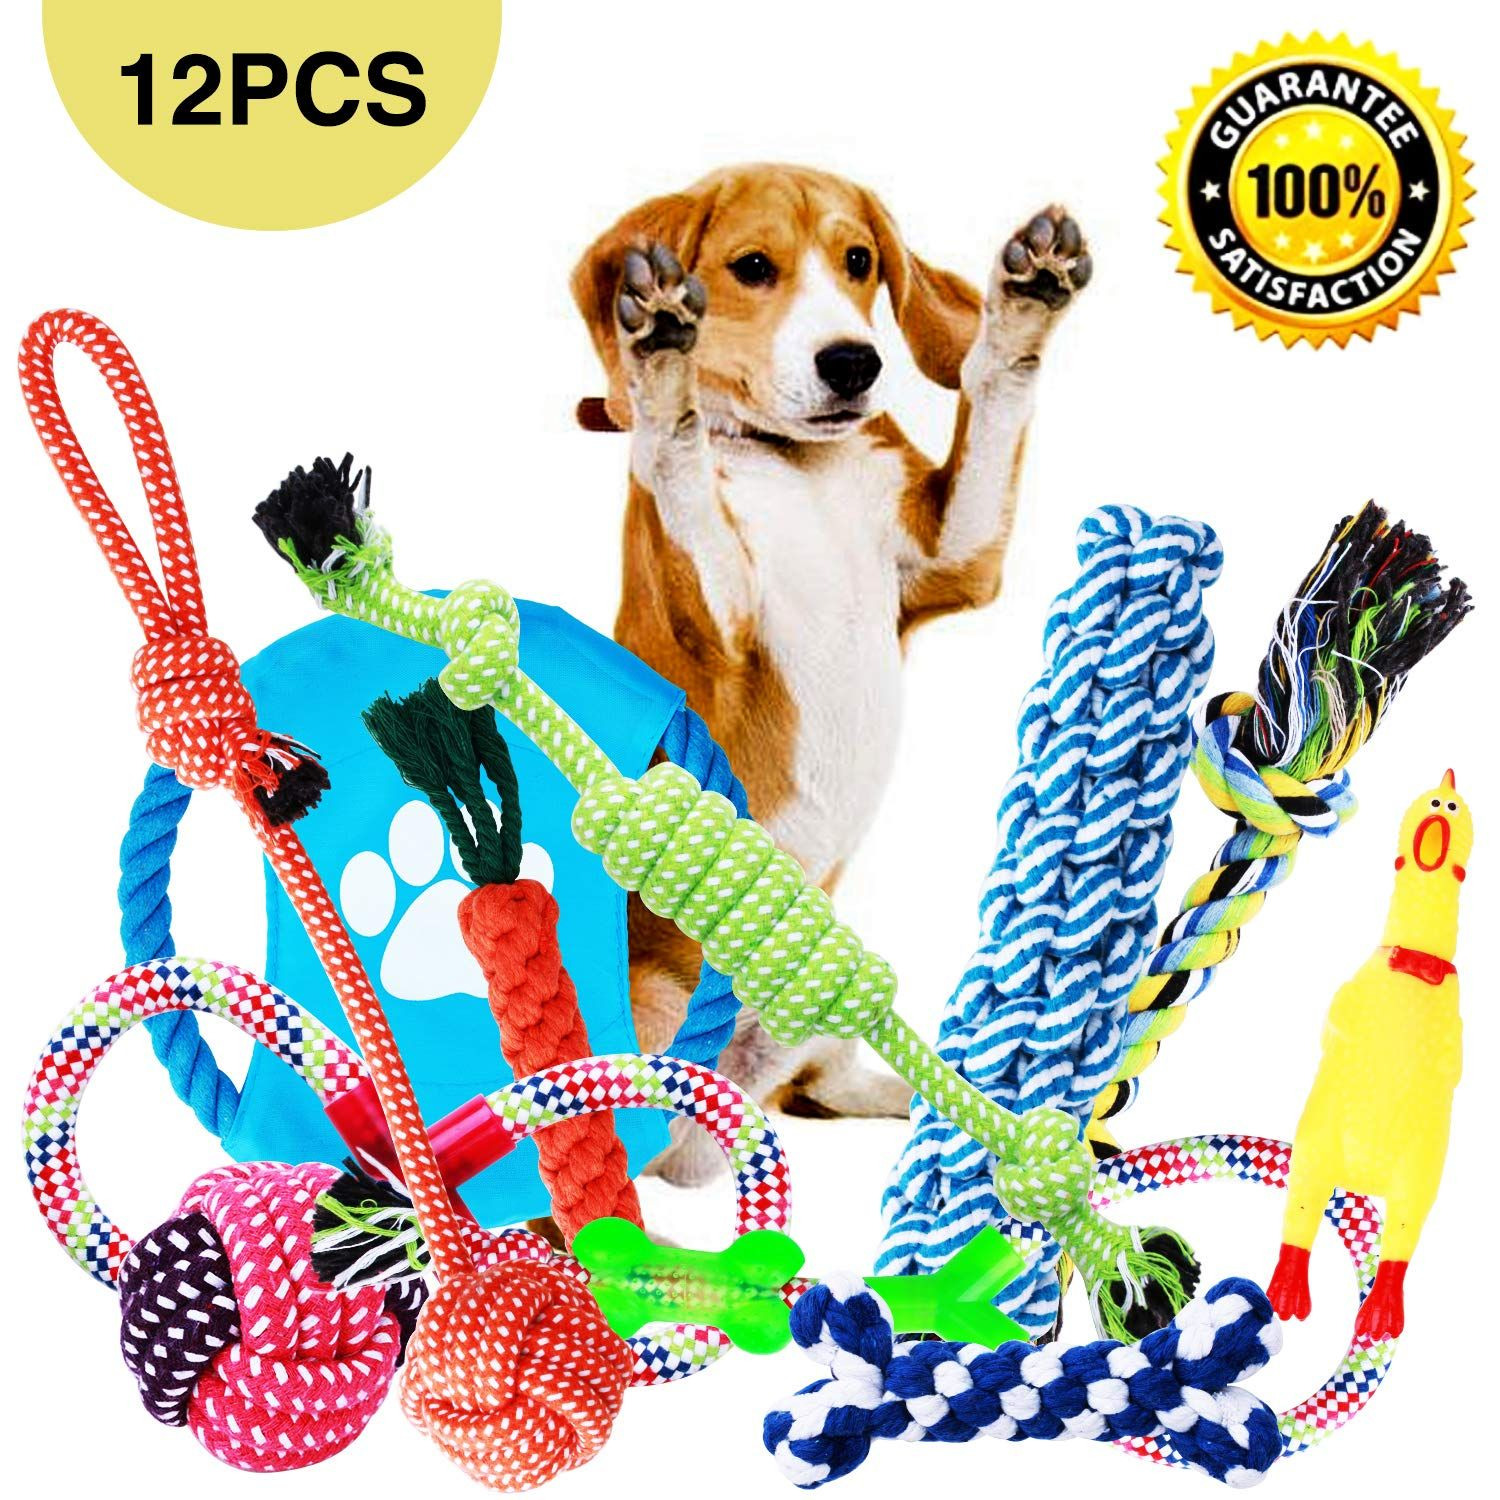 Dog Toys Dog Chew Toys Dog Training Toy Set With Ball Ropes And